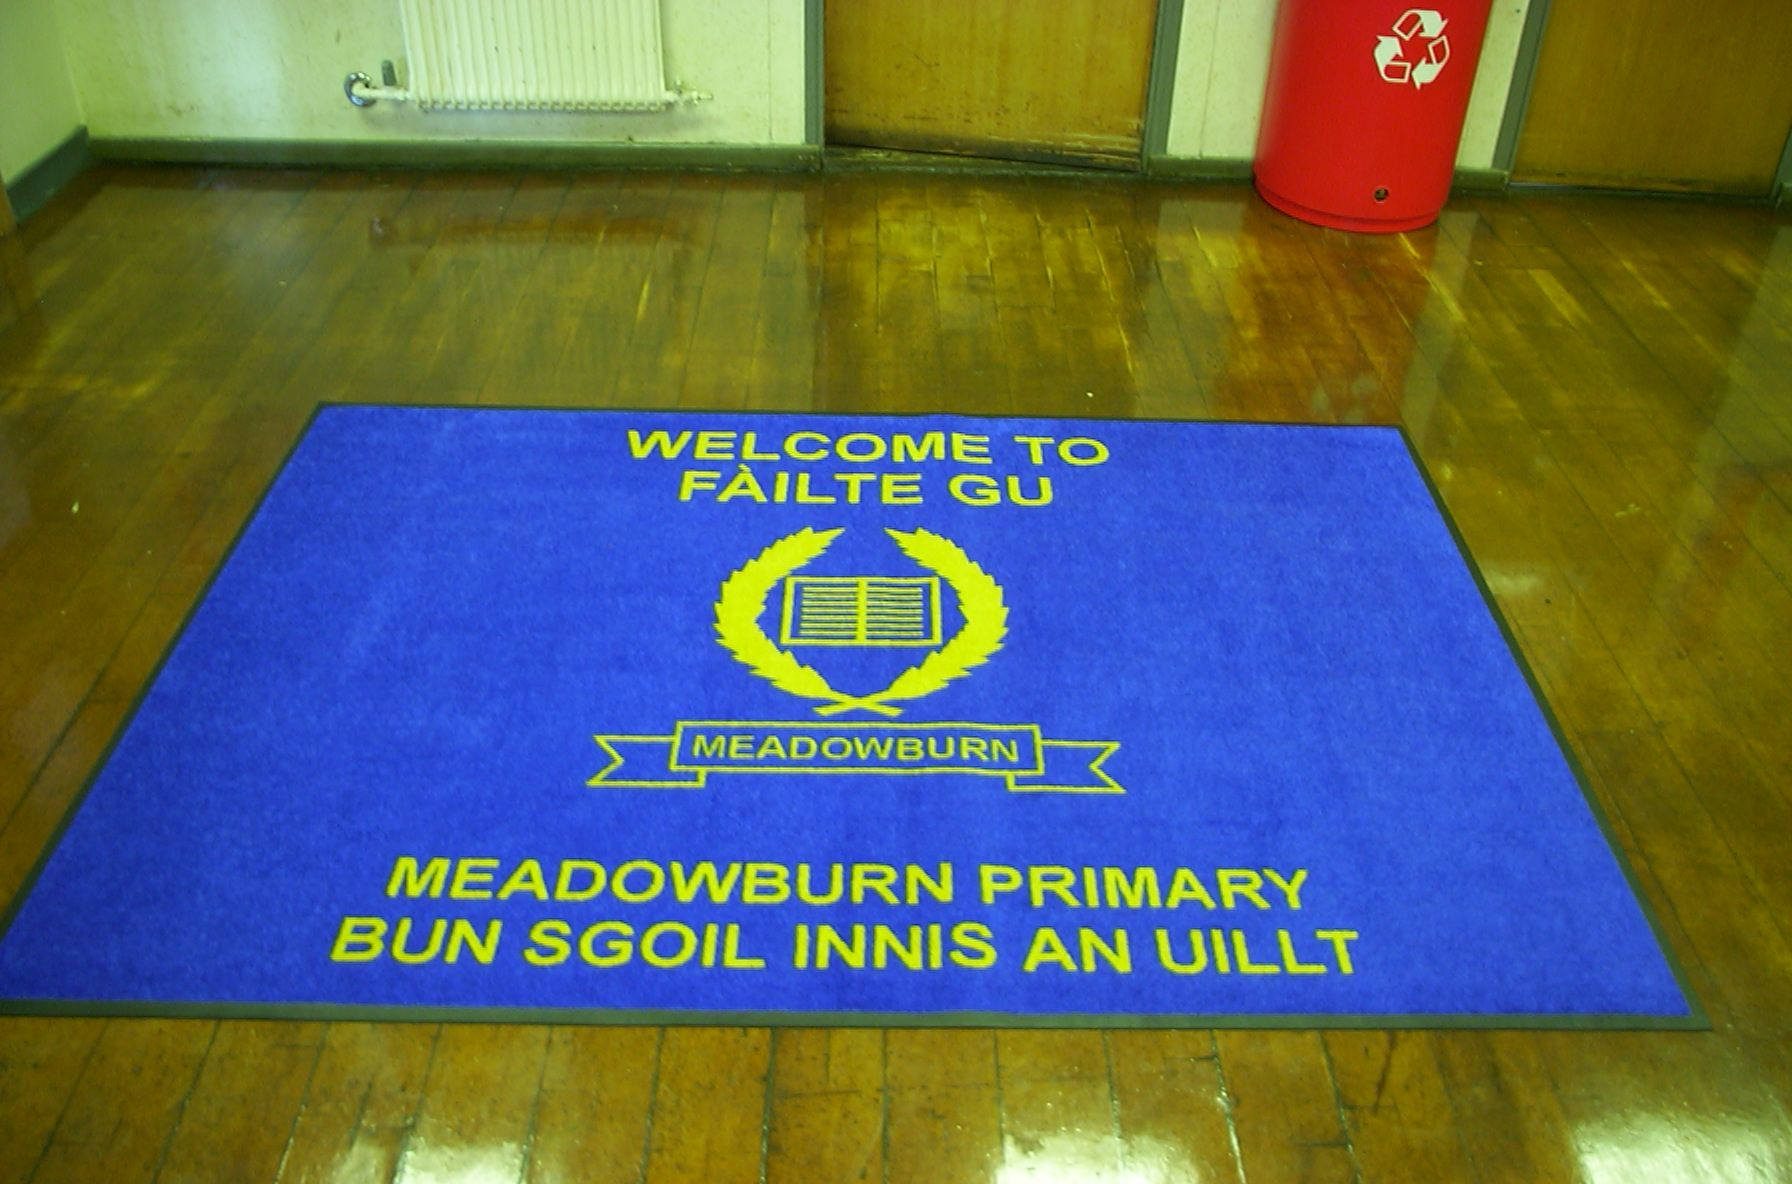 Meadowburn Primary